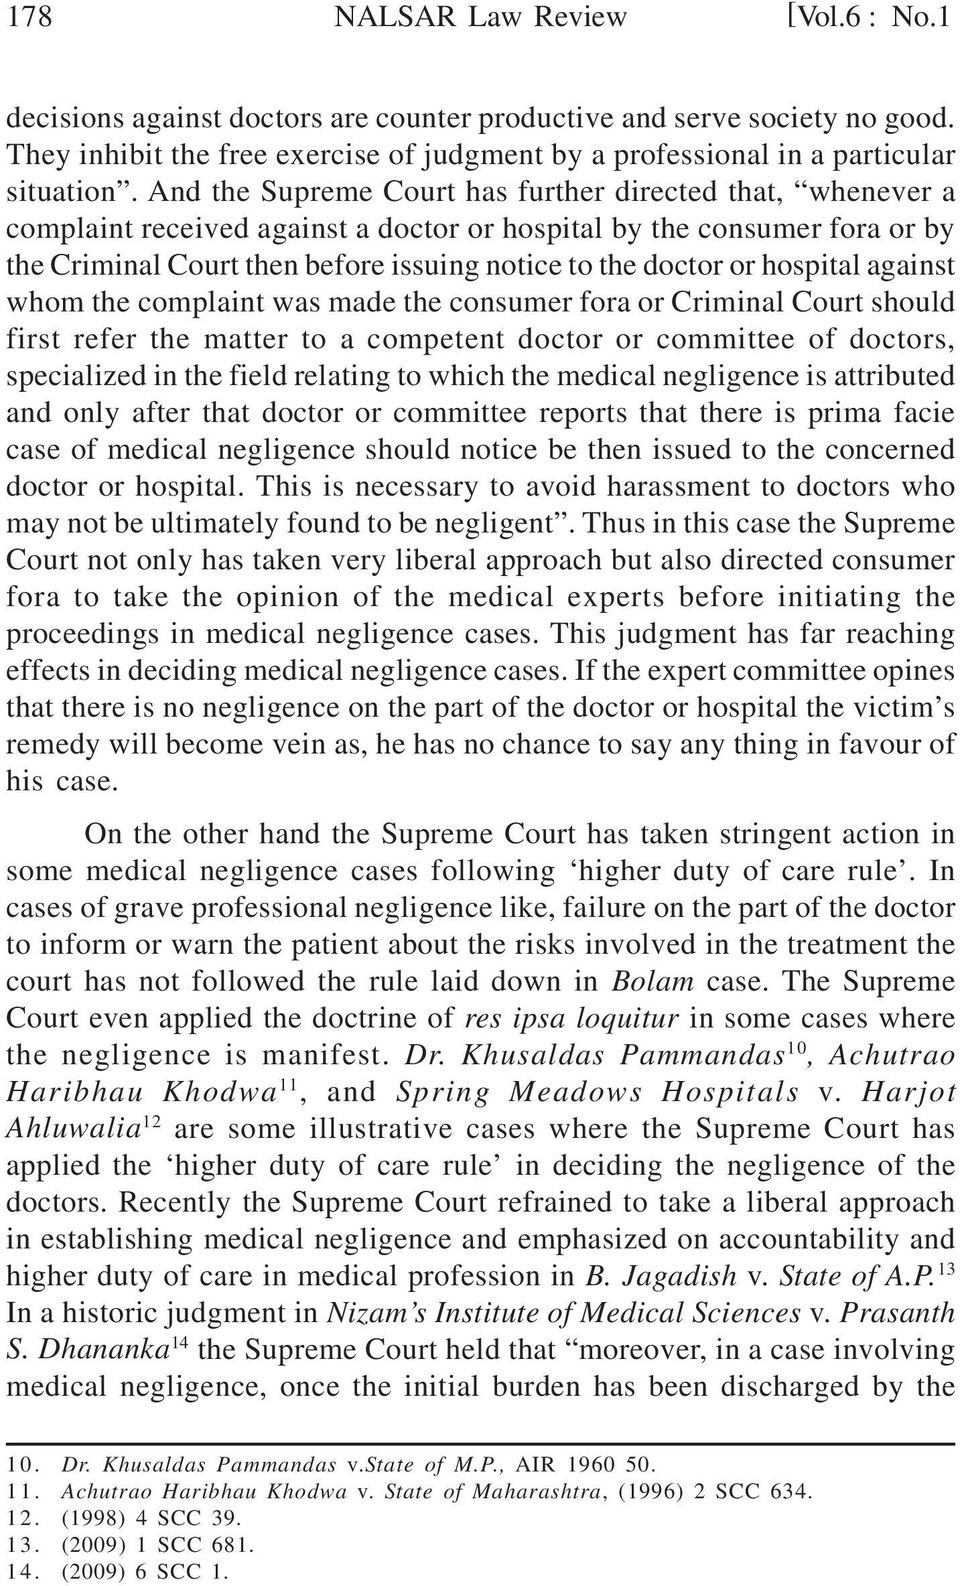 hospital against whom the complaint was made the consumer fora or Criminal Court should first refer the matter to a competent doctor or committee of doctors, specialized in the field relating to